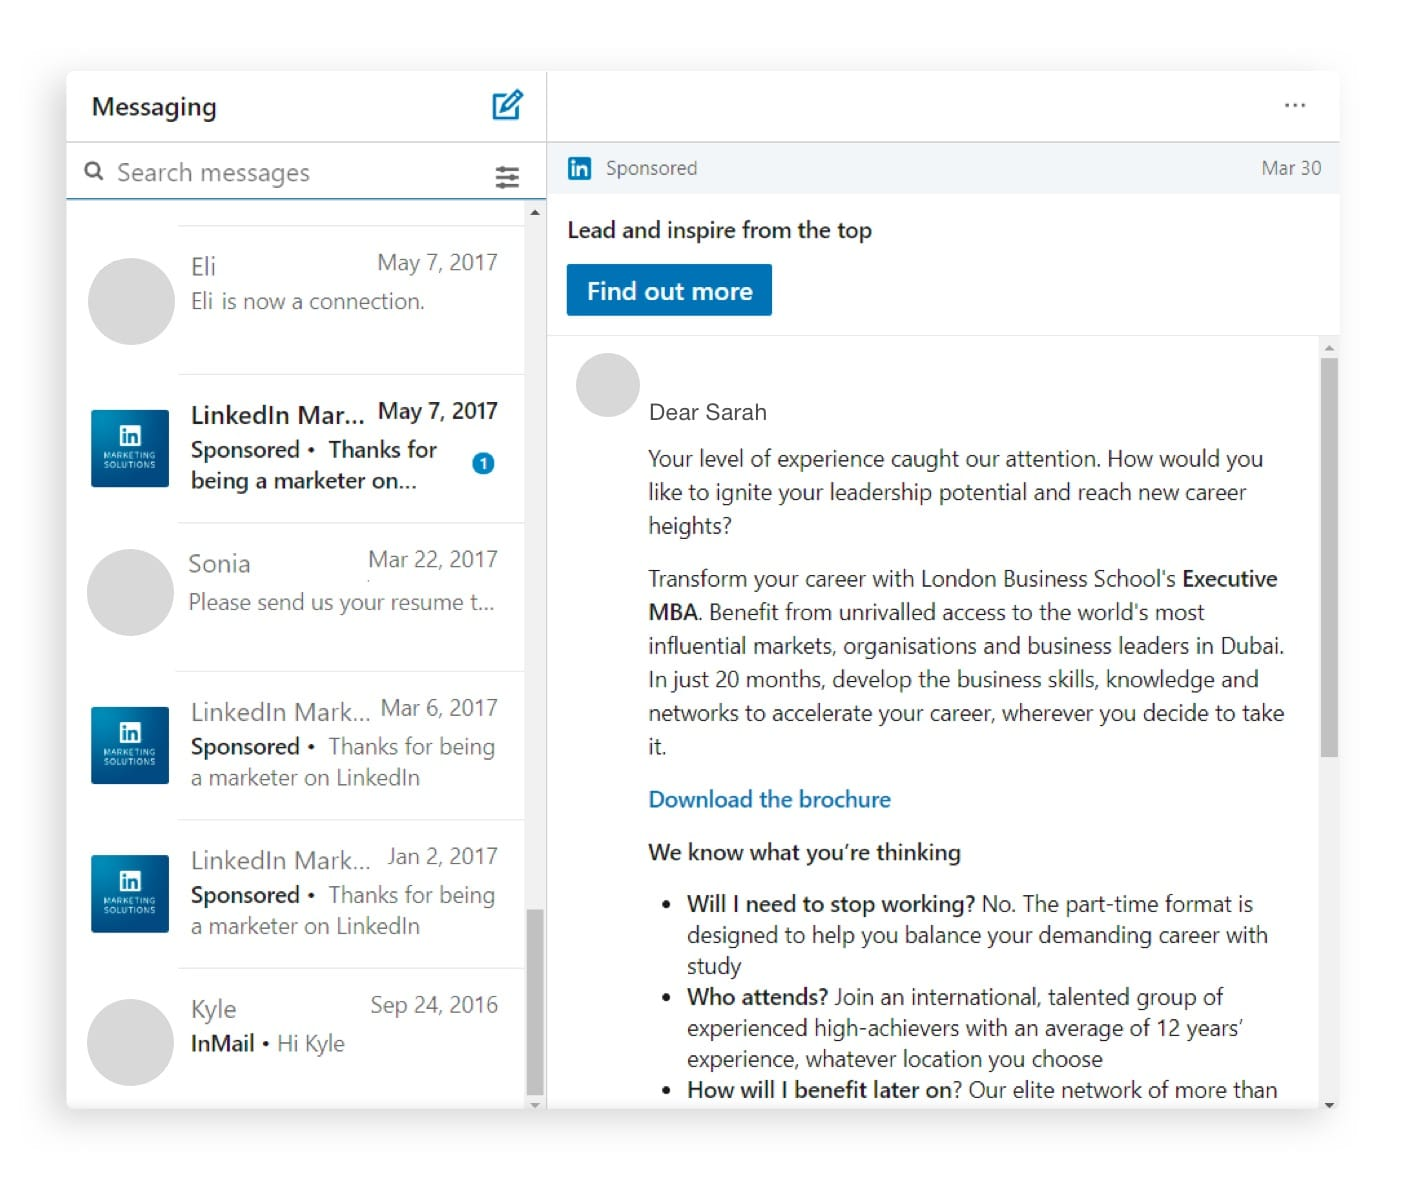 LinkedIn in-mail message ad